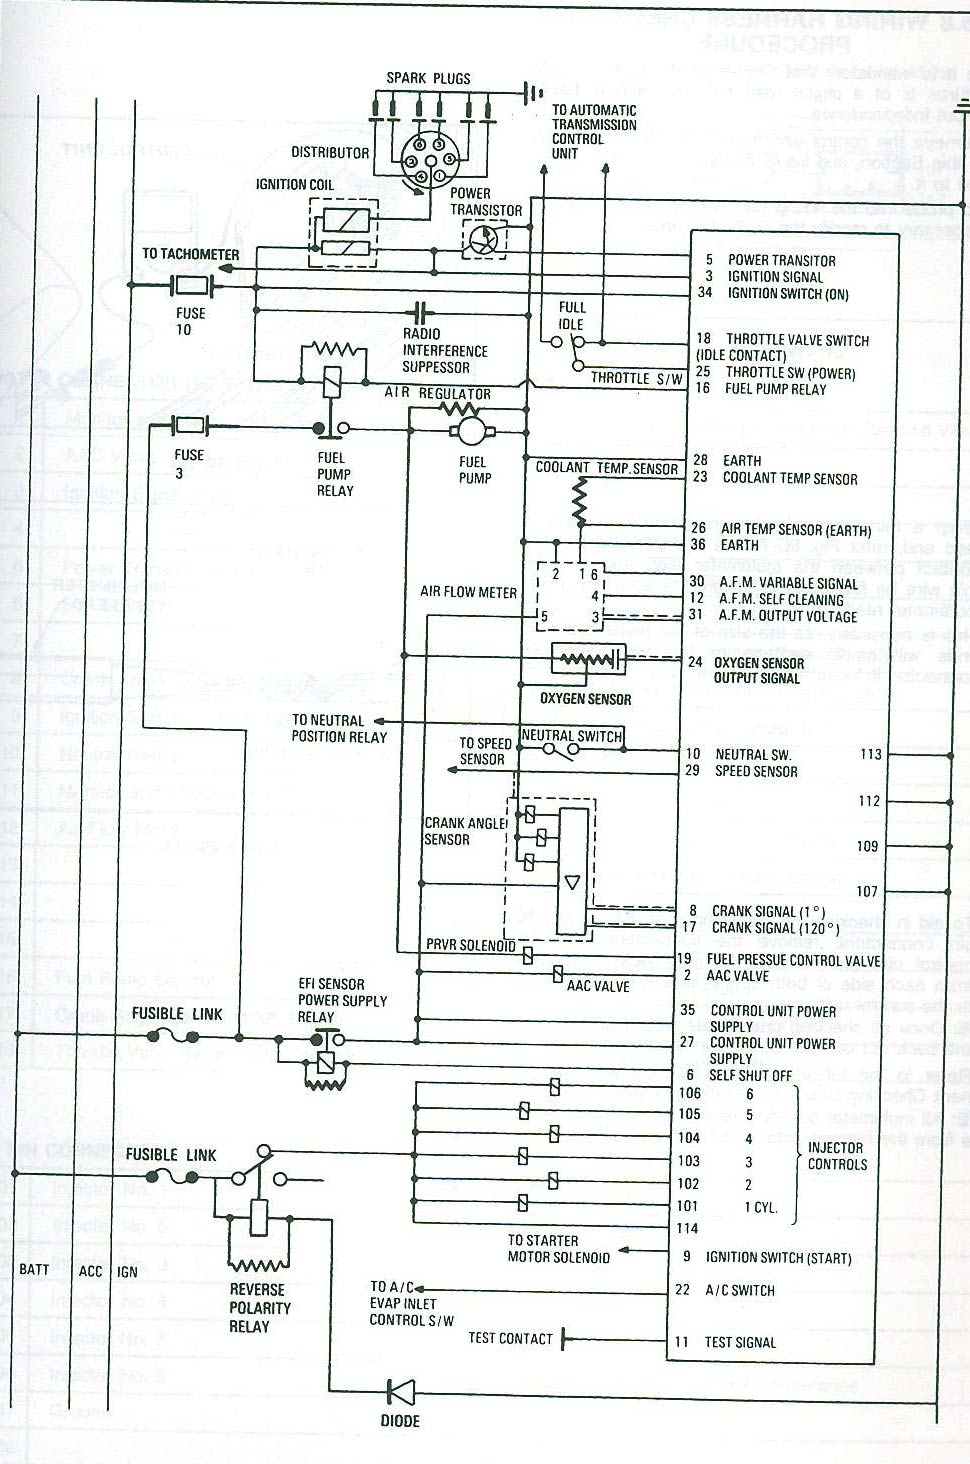 ecuwiring vl commodore wiring diagram vn commodore \u2022 wiring diagrams j vl commodore ecu wiring diagram at reclaimingppi.co